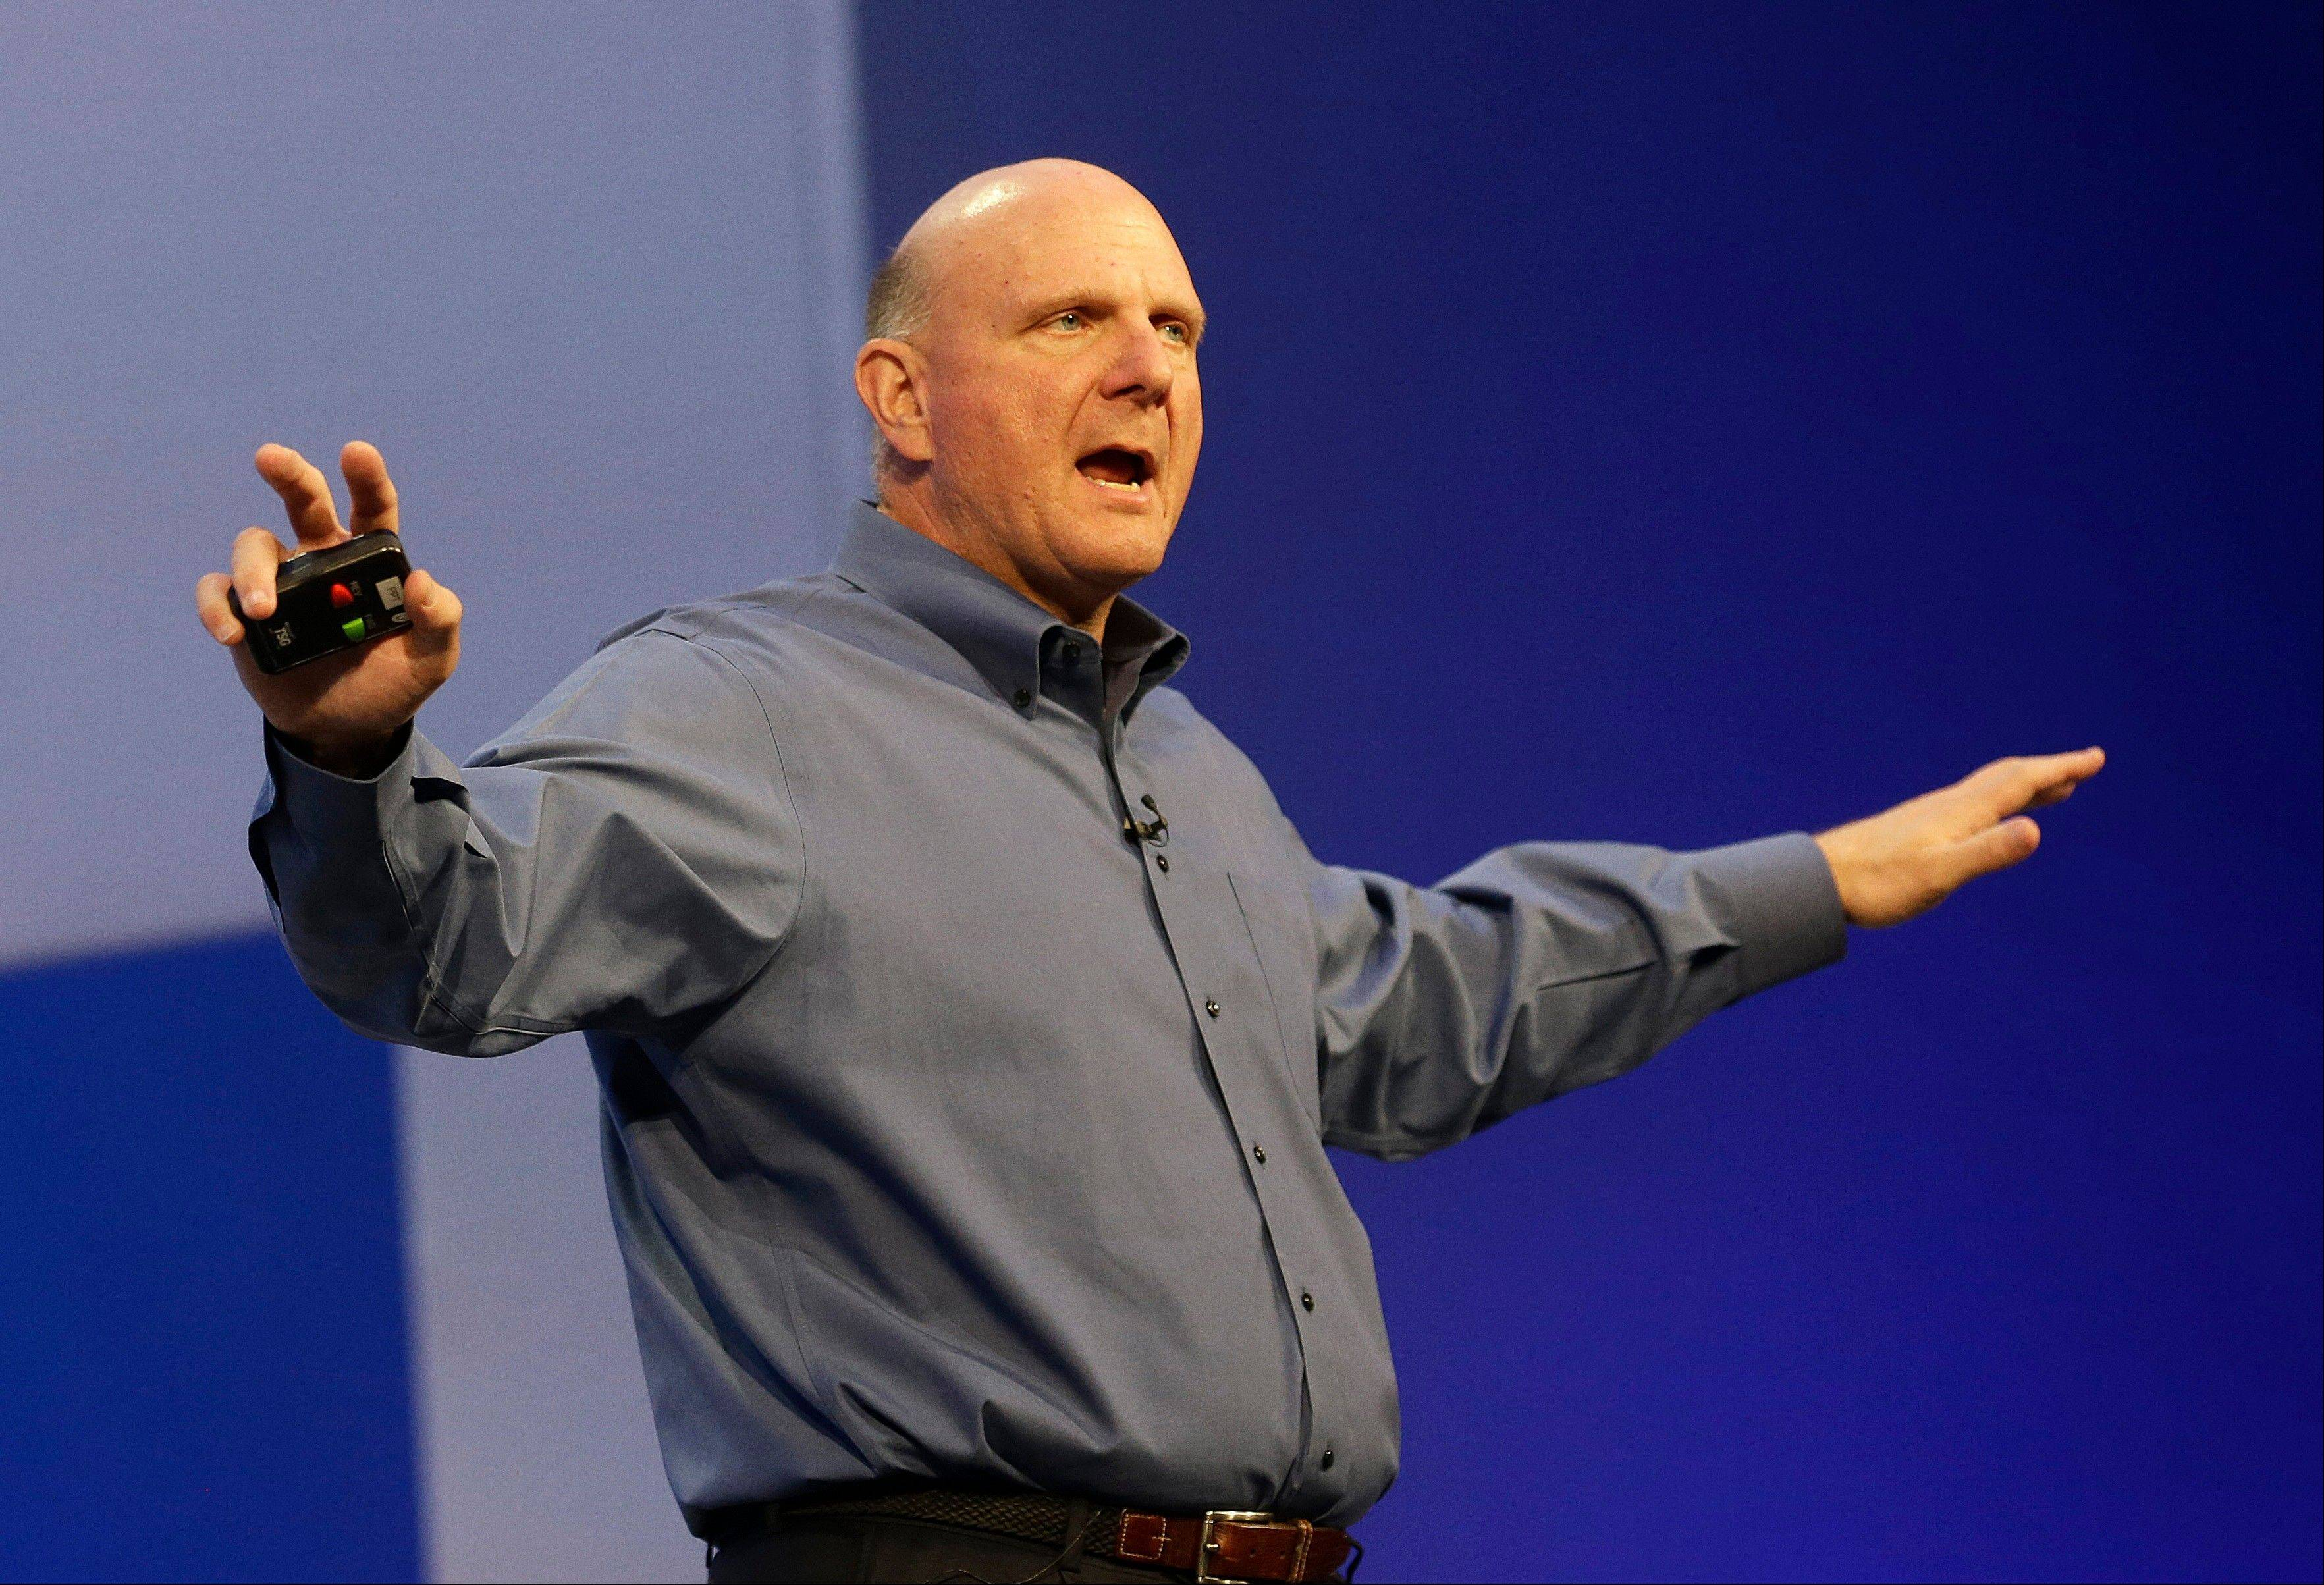 Microsoft CEO Steve Ballmer, who helped build Microsoft into a technology empire and then struggled to prevent it from crumbling under his own leadership, will retire within the next 12 months. The world�s biggest software company did not name a successor. Microsoft Corp.�s stock shot up 9 percent in premarket trading following the news.